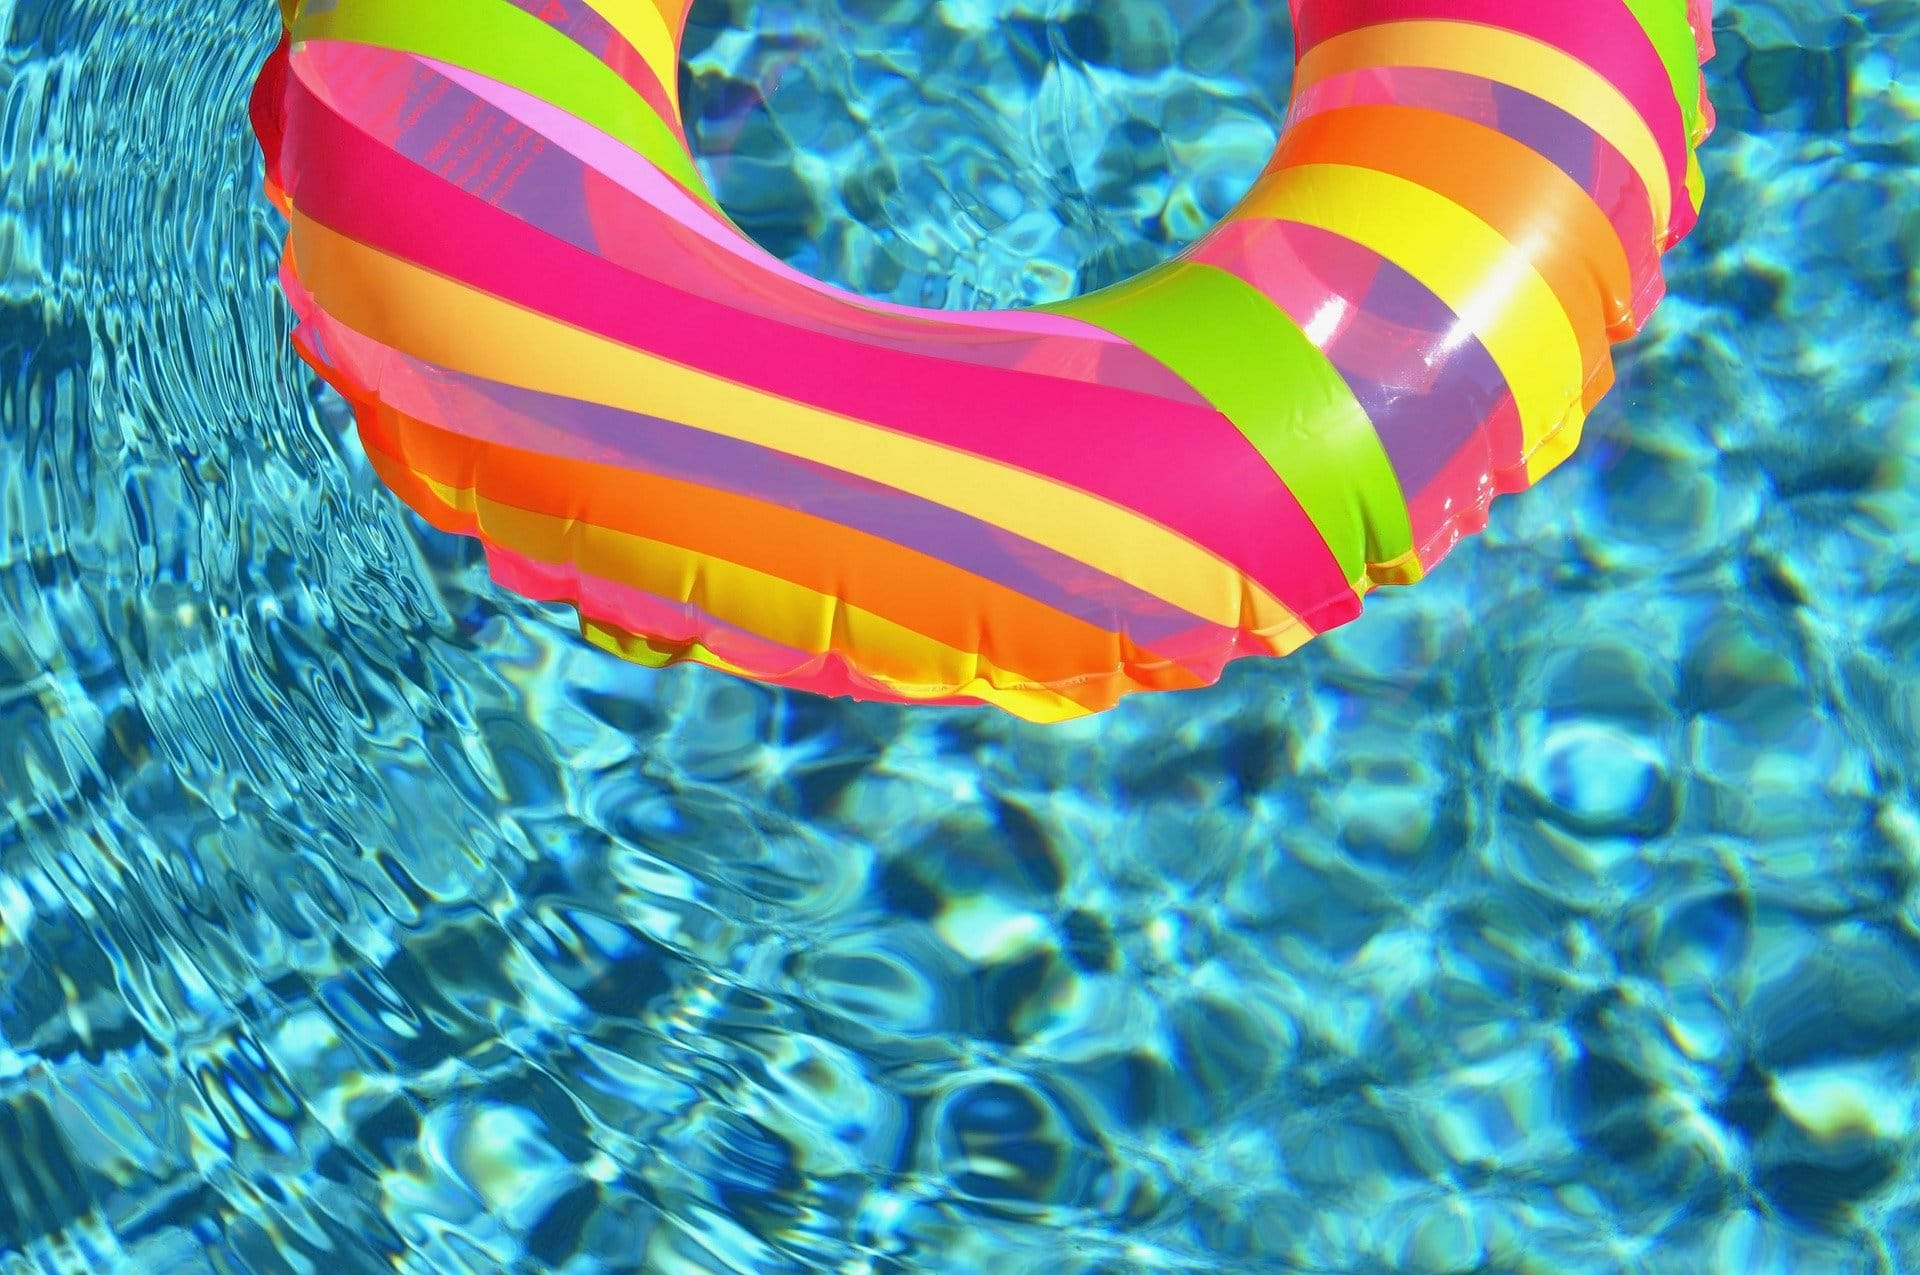 Photo shows a float in pool water.